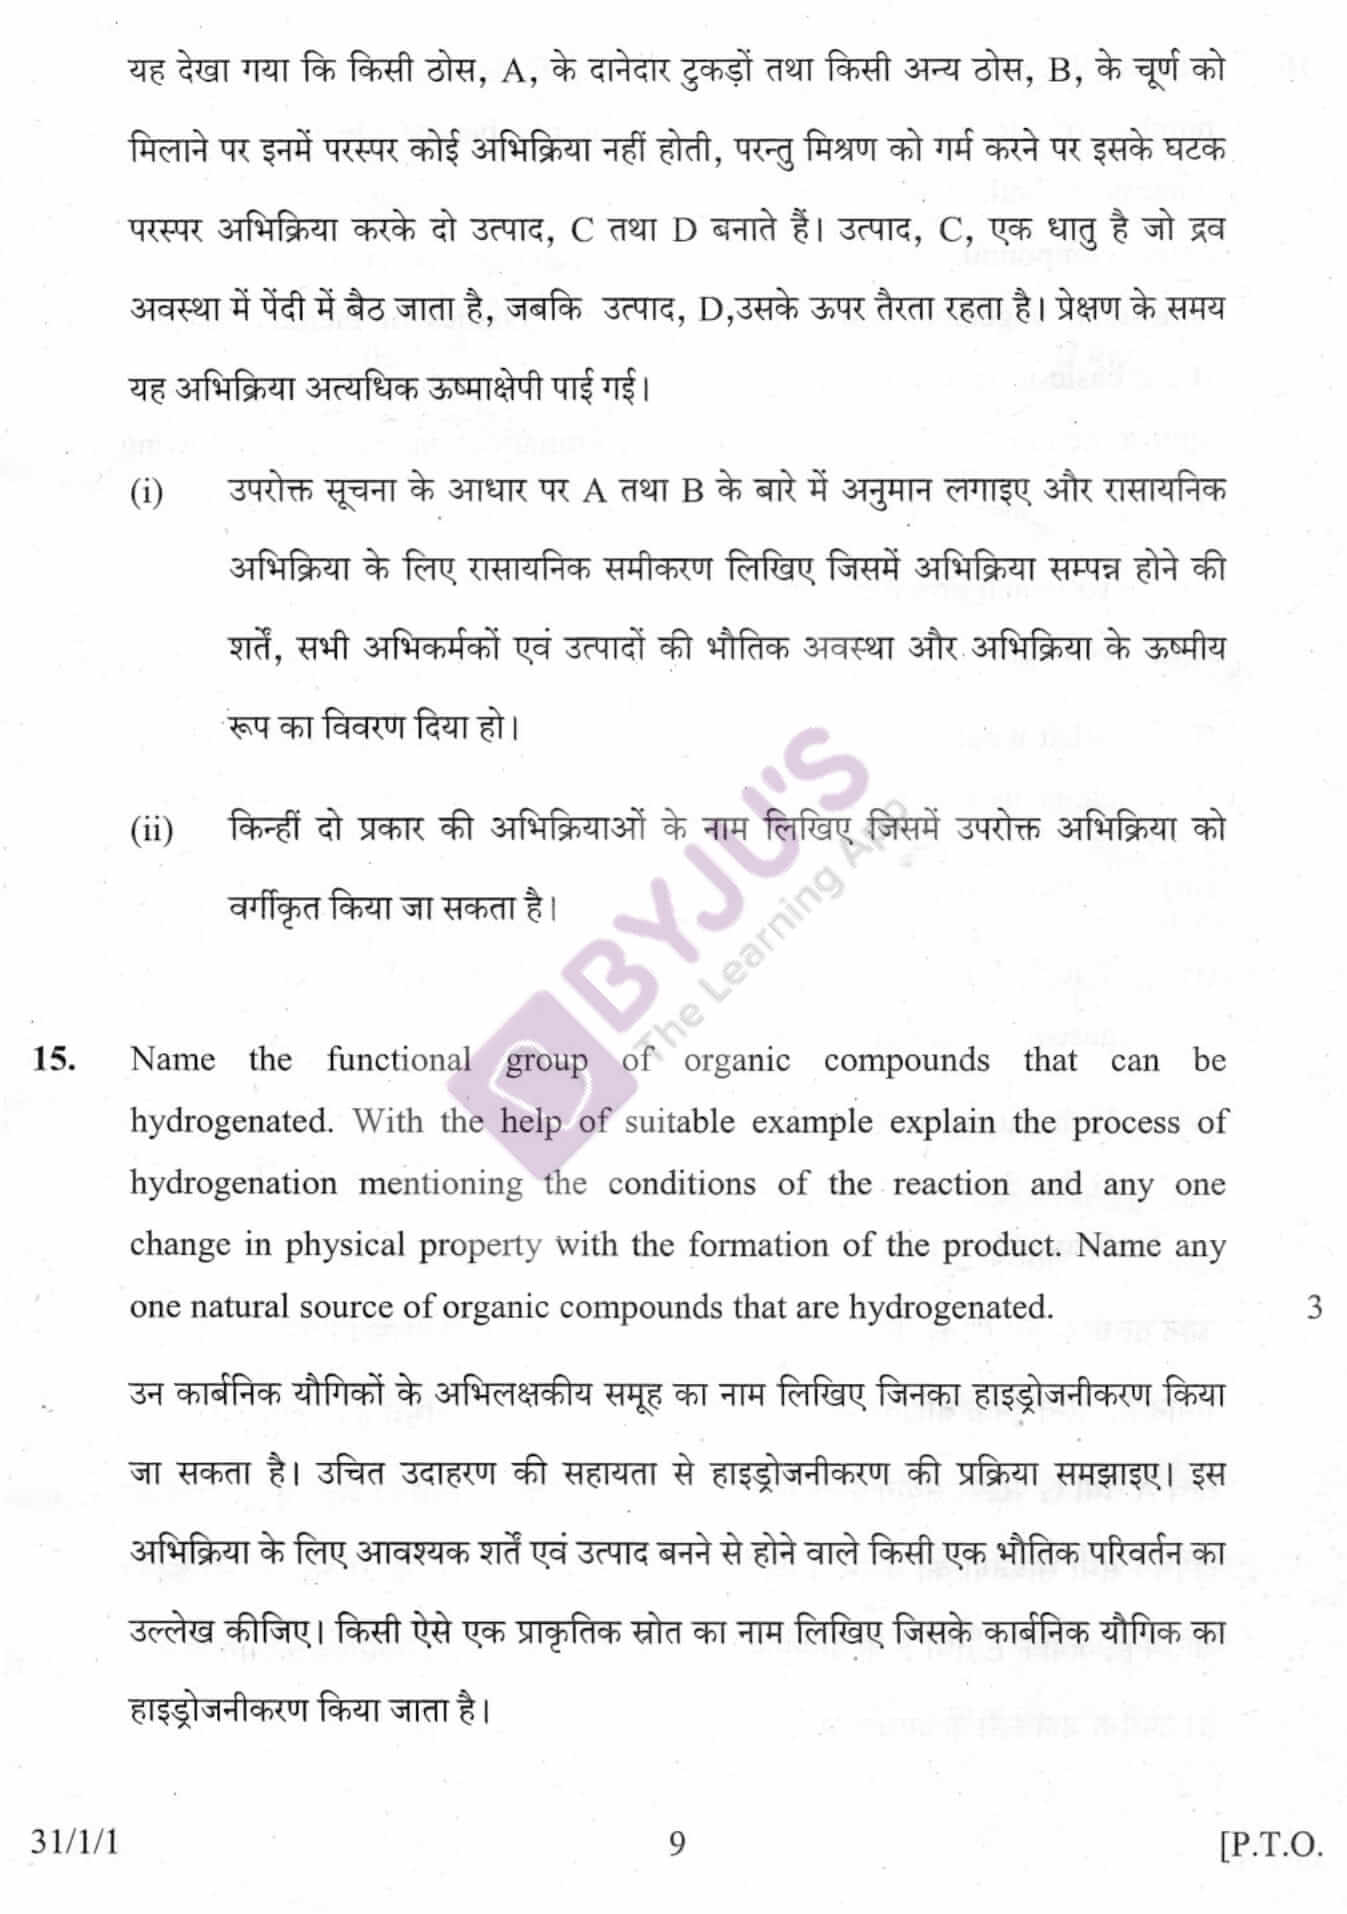 CBSE Class 10 Science Previous Year Question Paper 2010 -Download Now